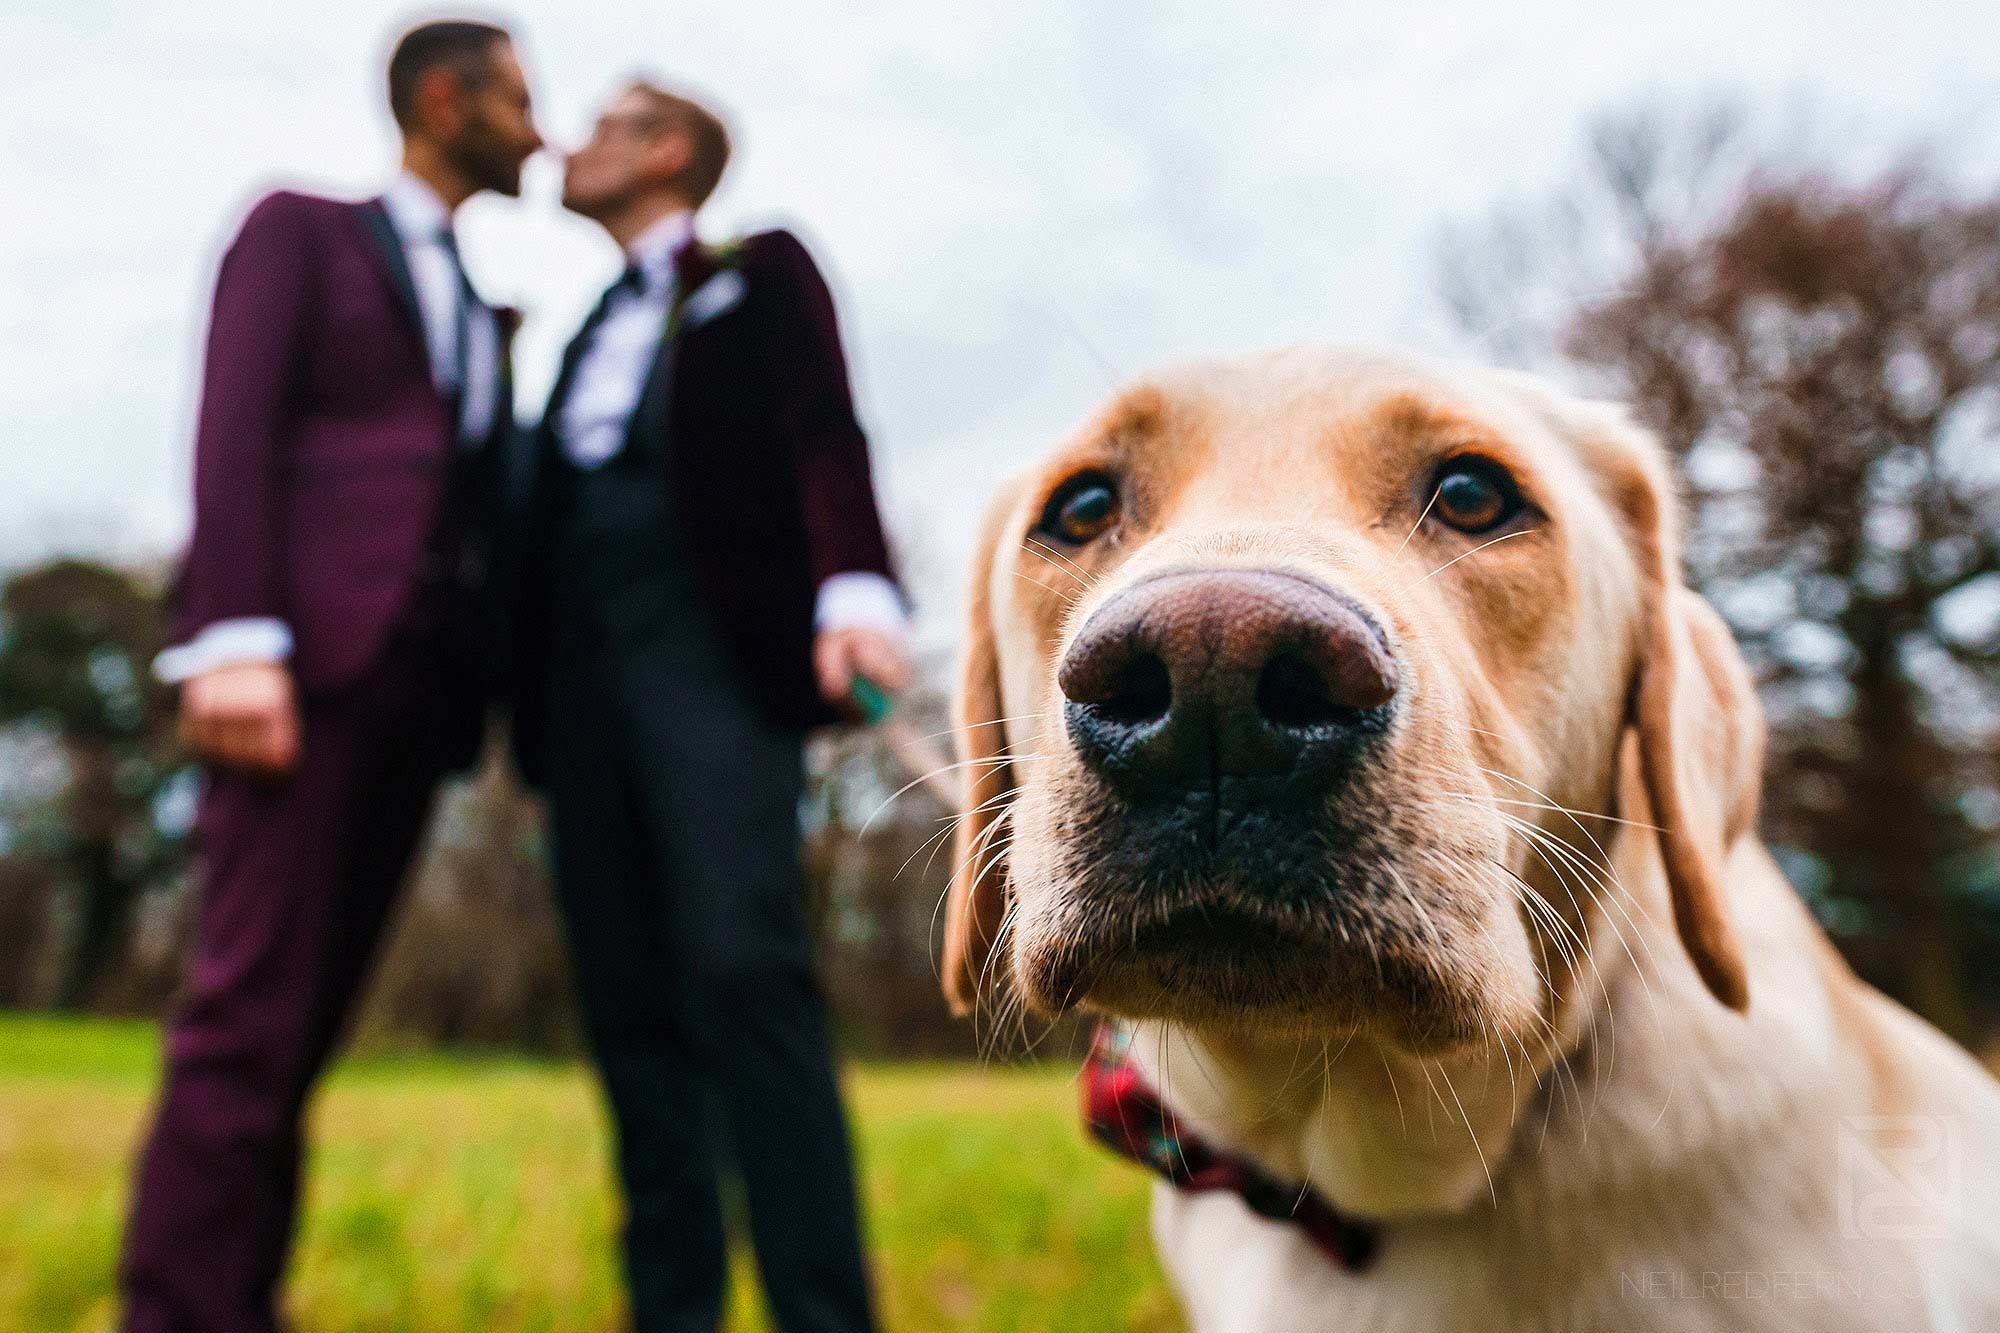 two grooms kissing with pet dog in foreground